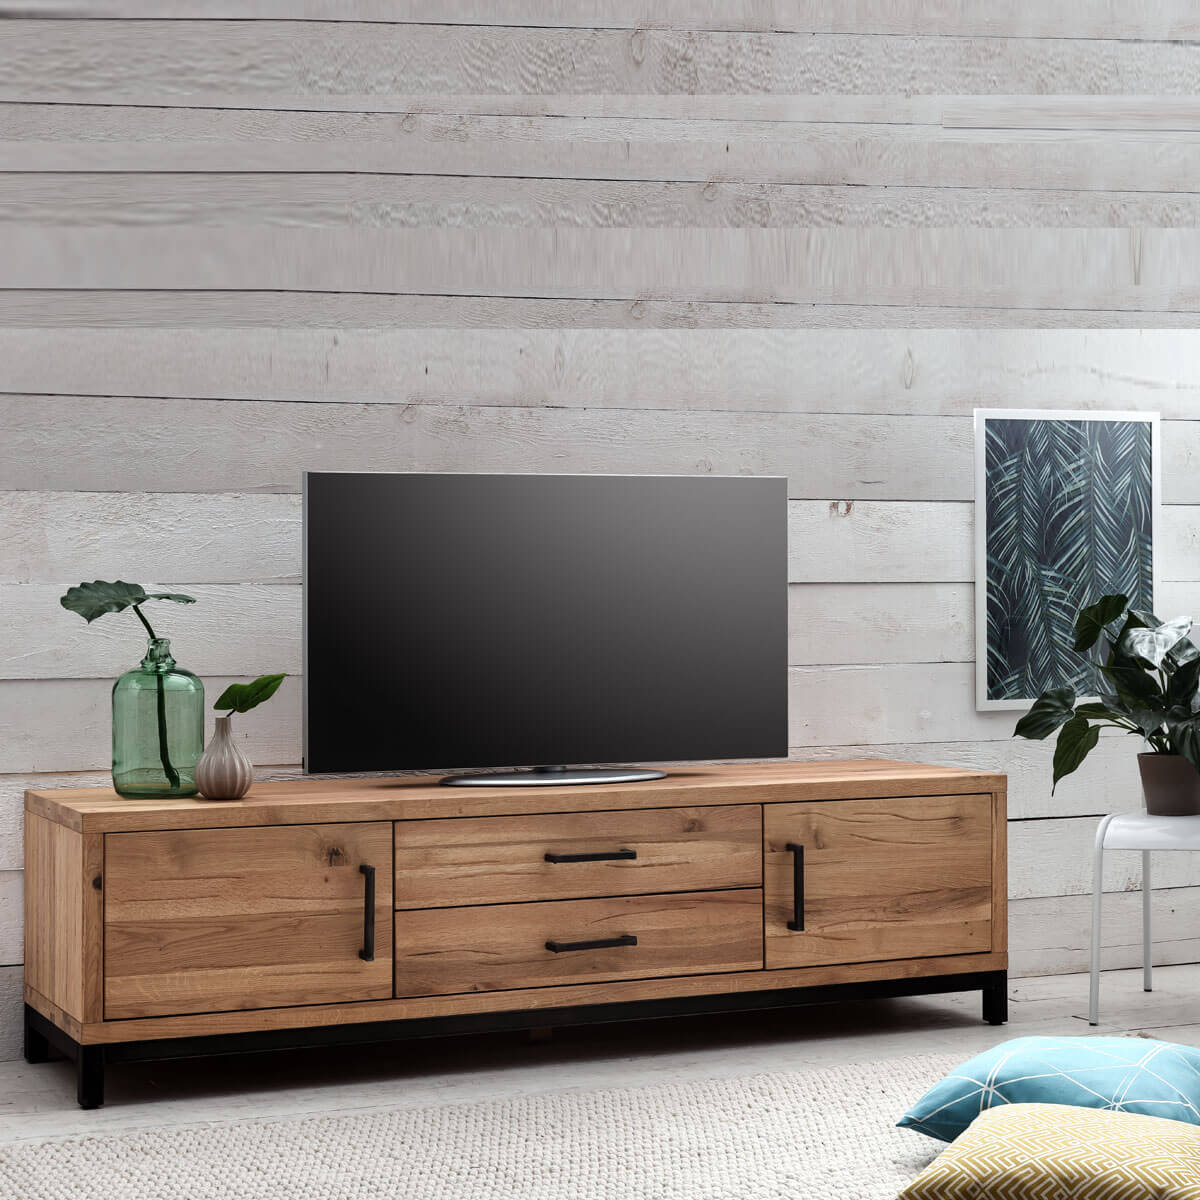 tv lowboard bestano 200 x 50 x 55 cm eiche massivholz. Black Bedroom Furniture Sets. Home Design Ideas